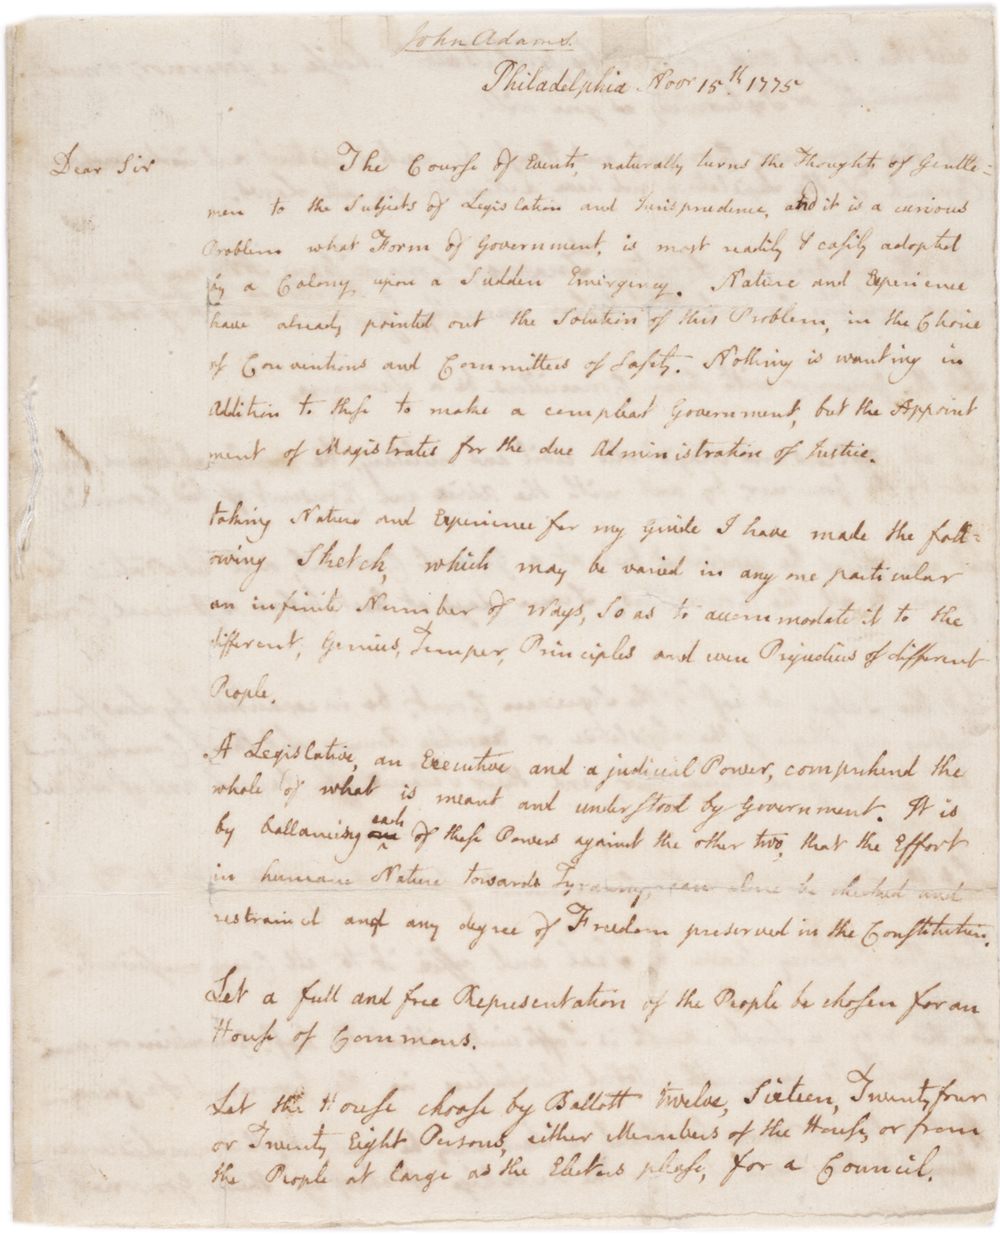 John Adams to Richard Henry Lee, November 15, 1775 (GLC03864)